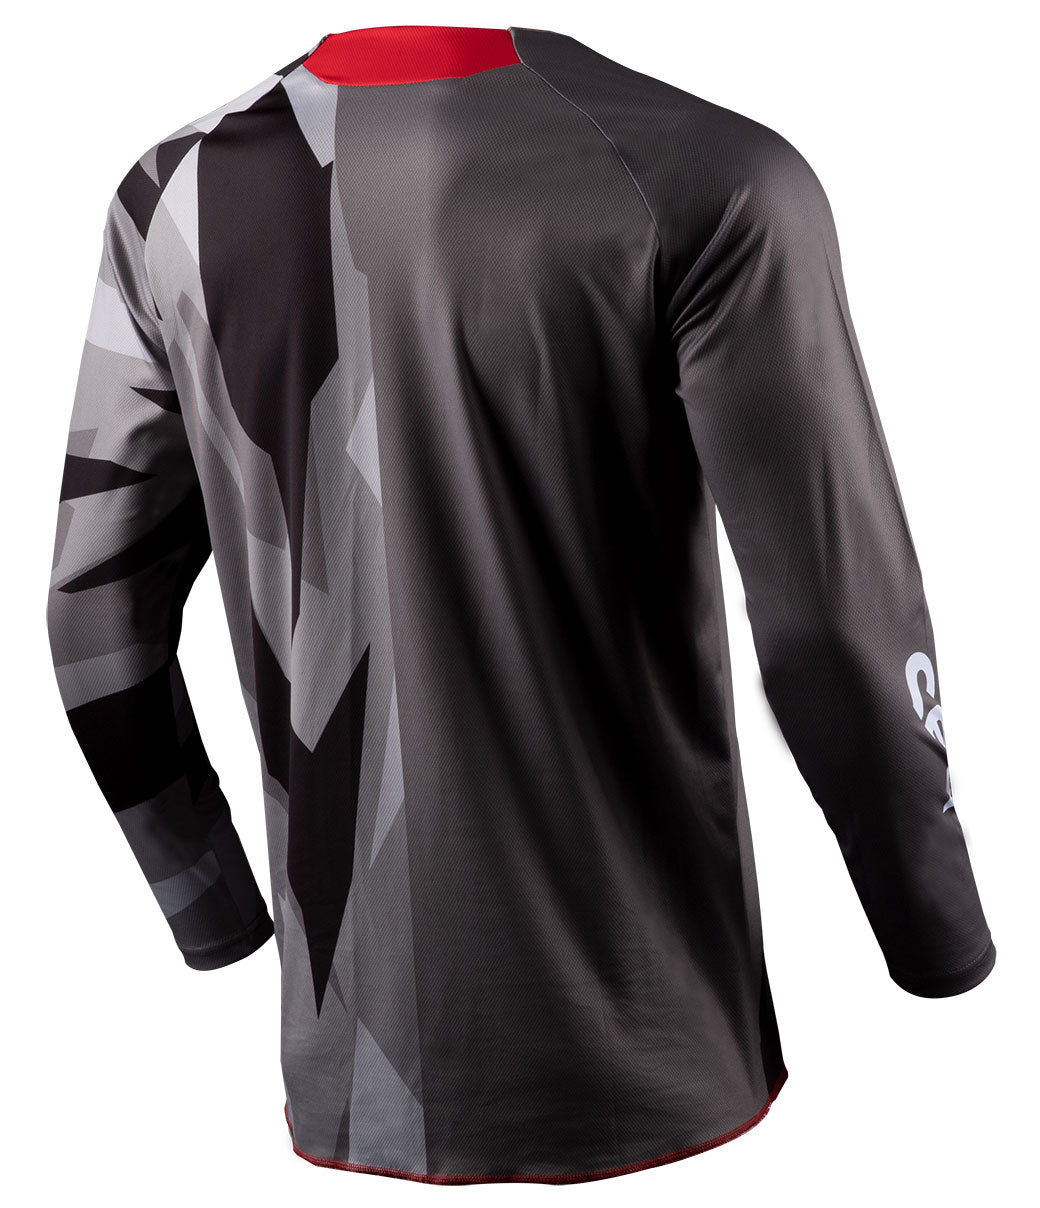 Youth Annex Bortz Jersey - Black/Gray